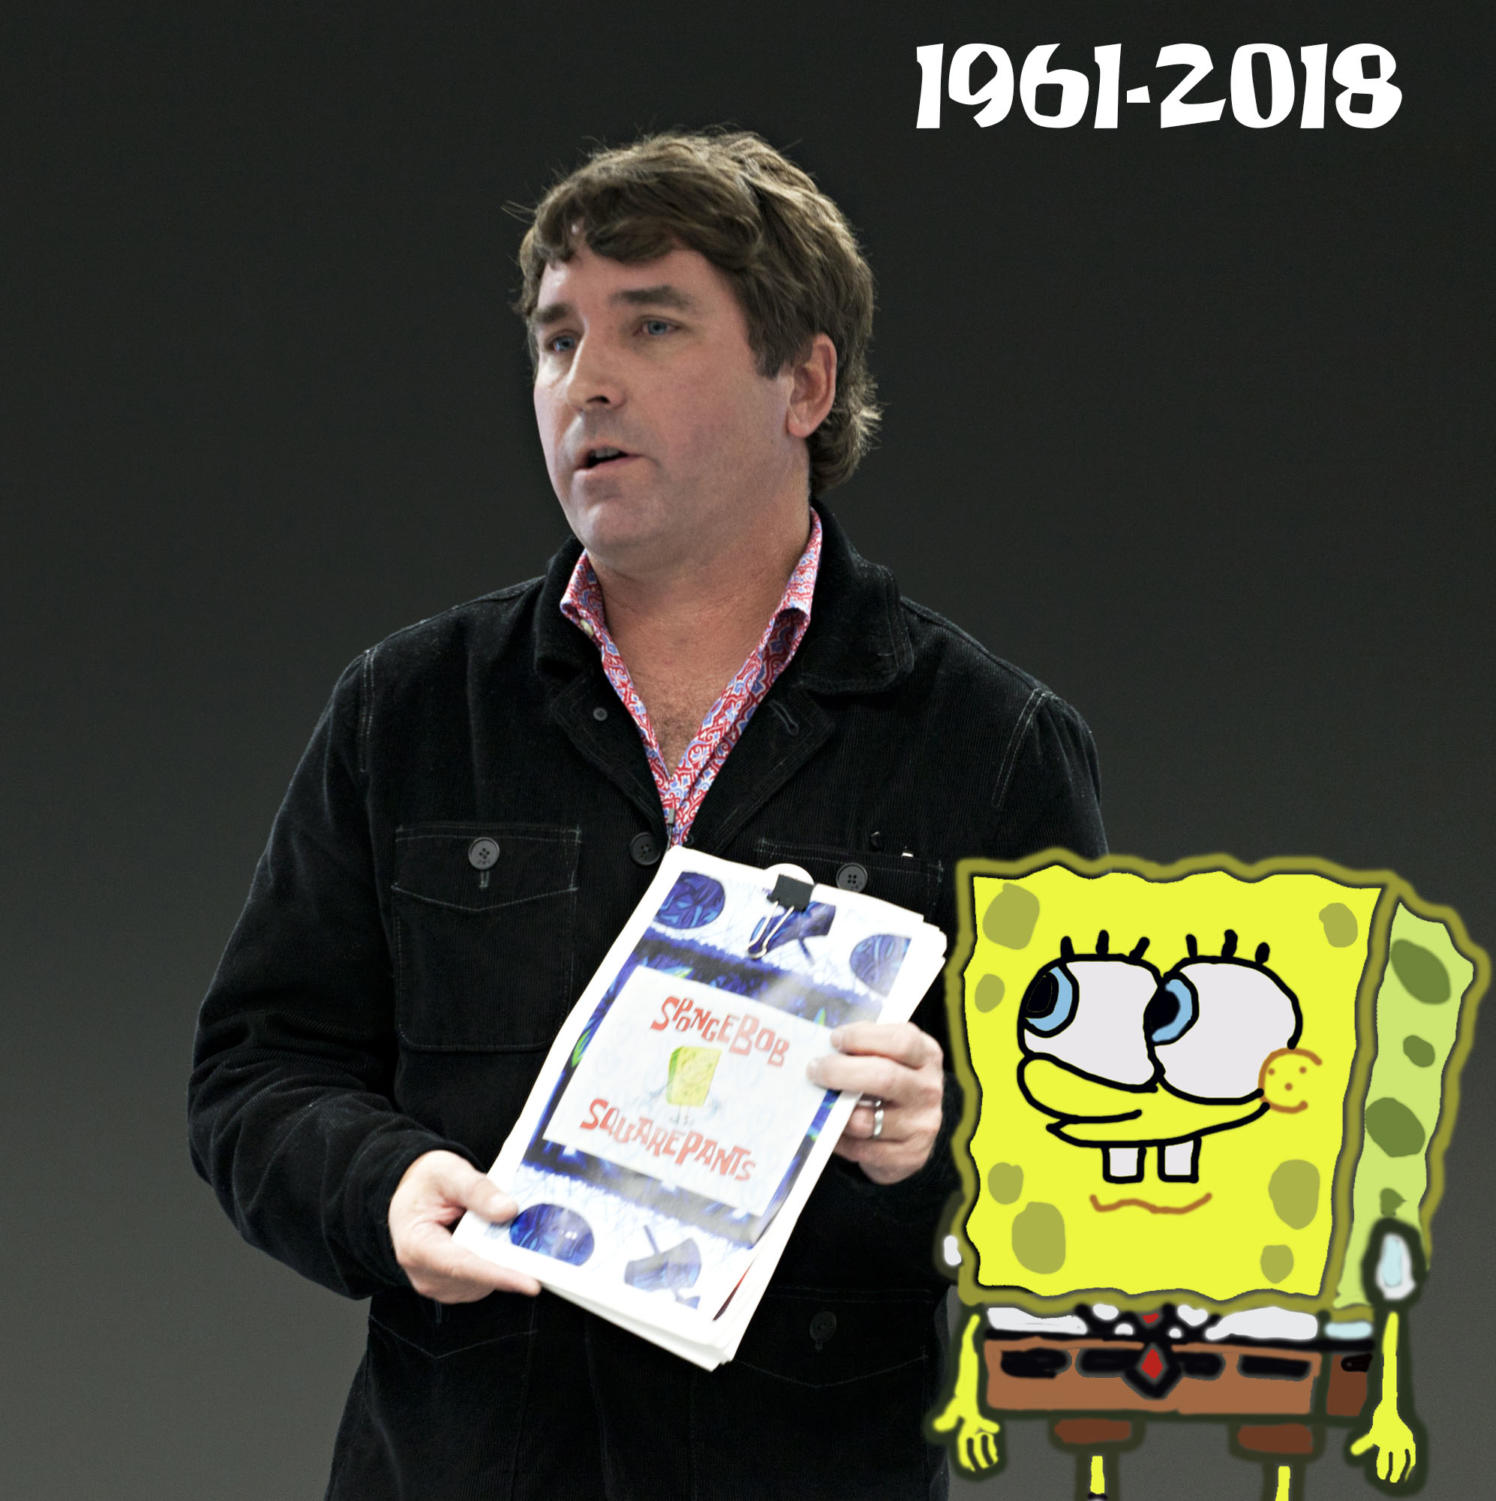 SpongeBob SquarePants creator Stephen Hillenburg passed away at the age of 57 due to complications from ALS. He developed the titular character in a comic strip, and eventually the show made its debut on Nickelodeon on May 1, 1999.